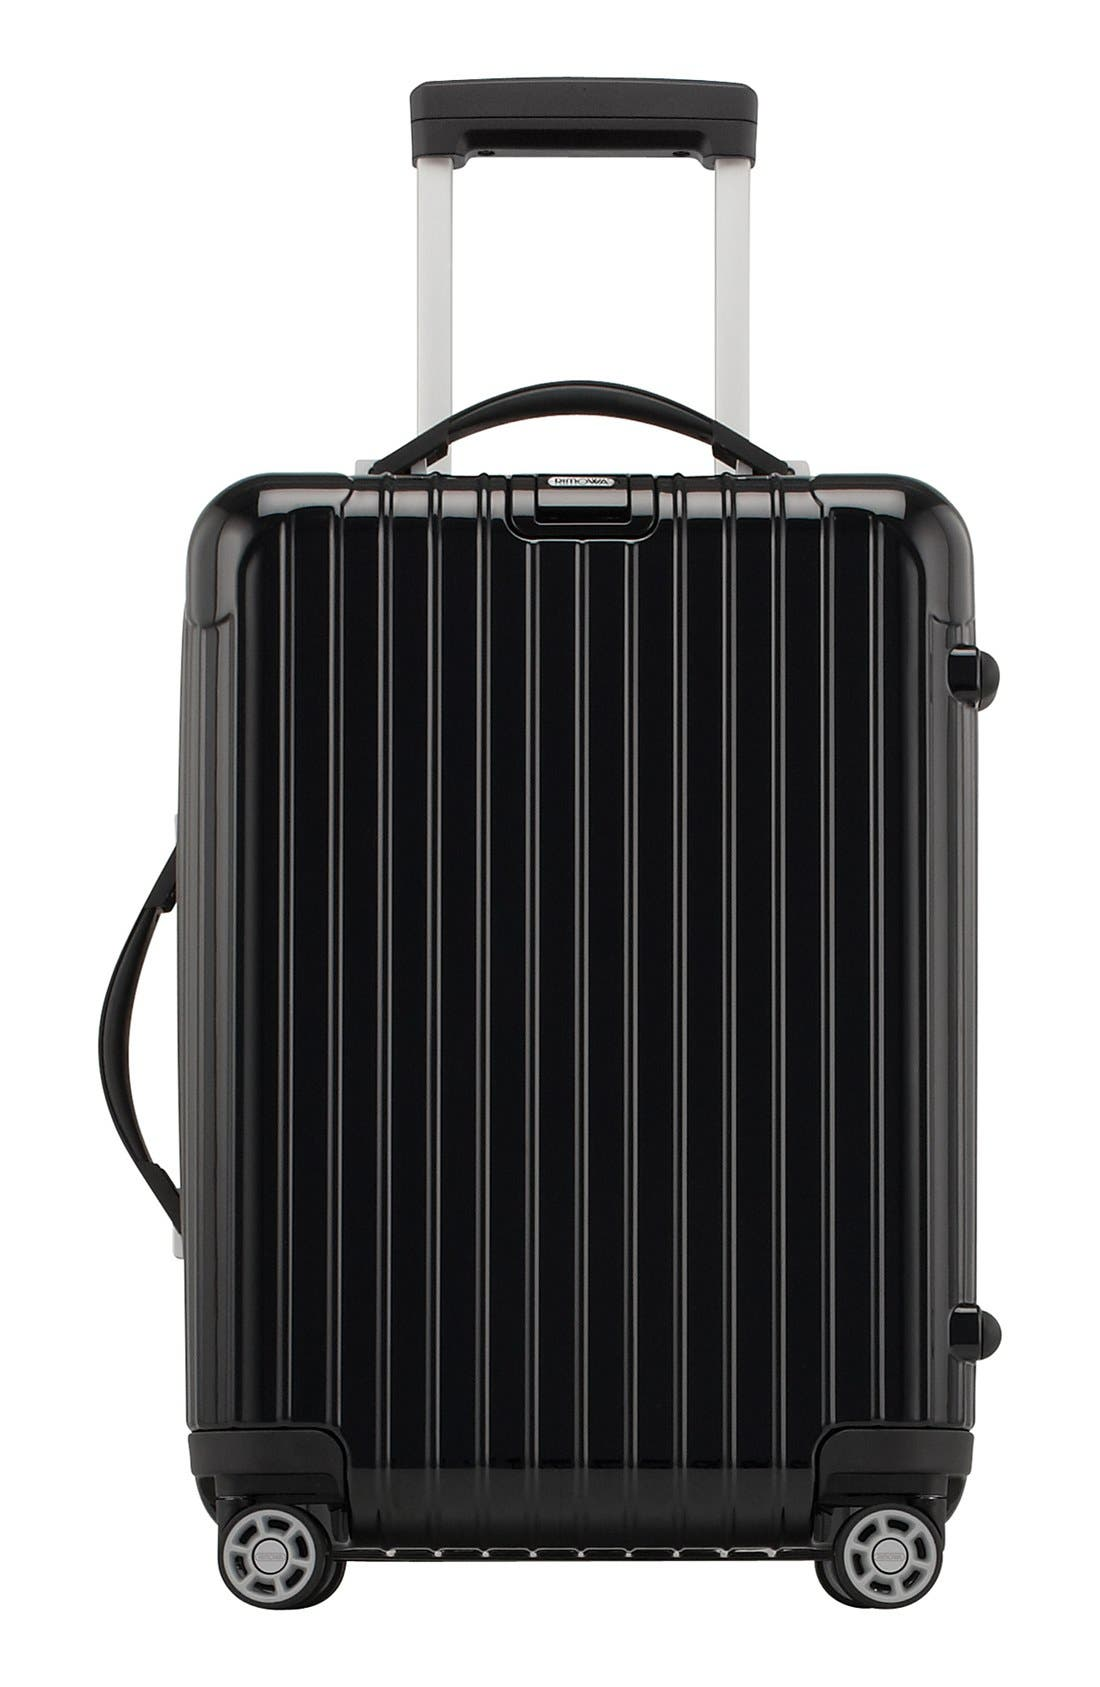 Alternate Image 1 Selected - RIMOWA Salsa 22 Inch Deluxe Cabin Multiwheel® Carry-On